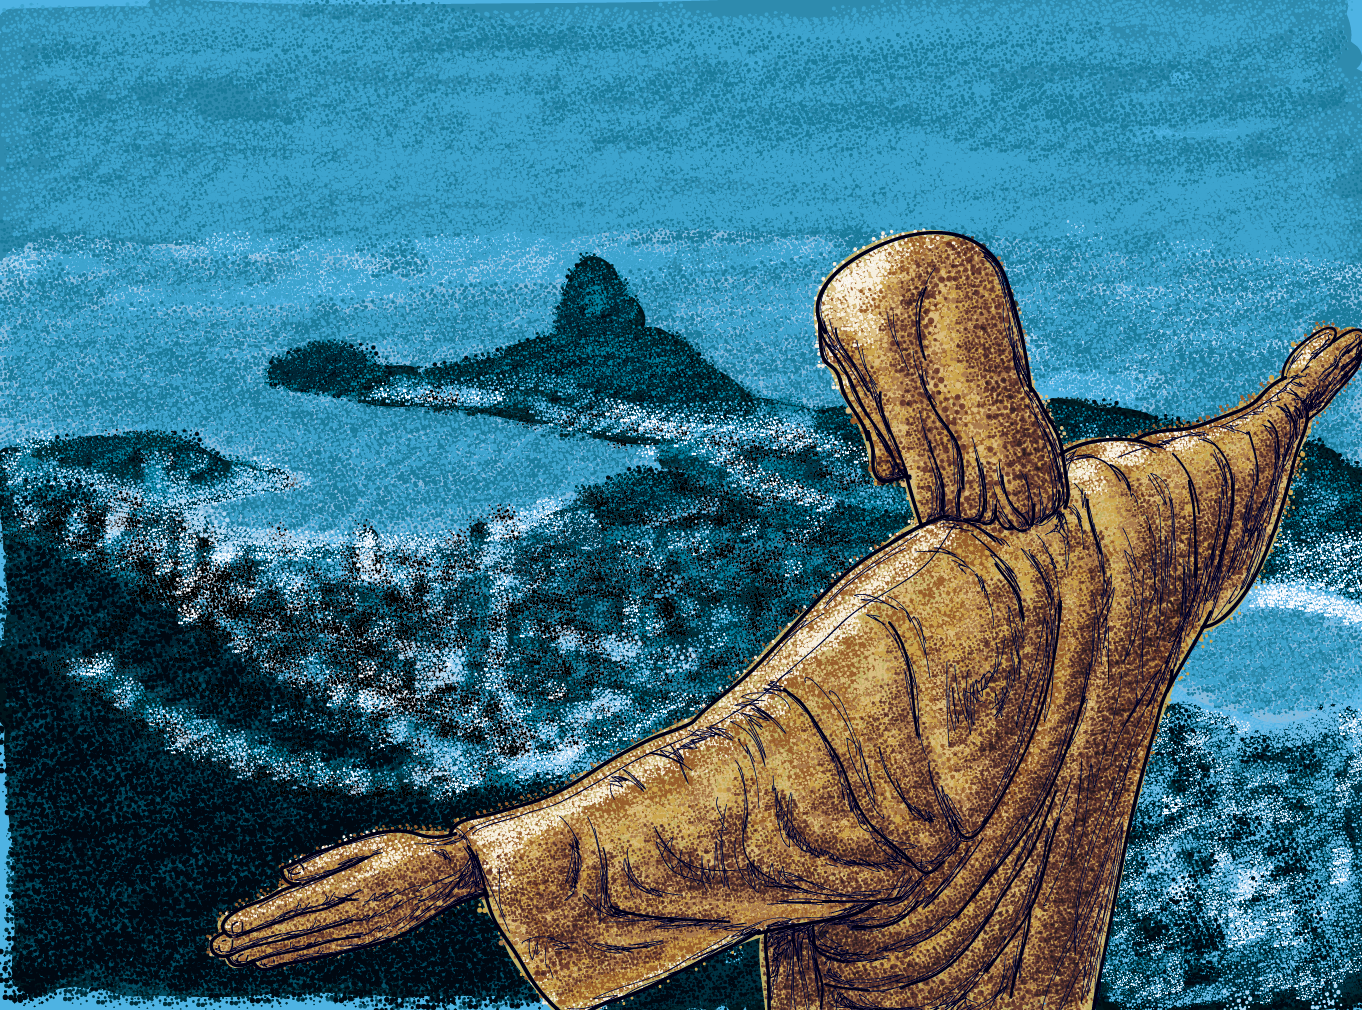 Christ, the Redeemer